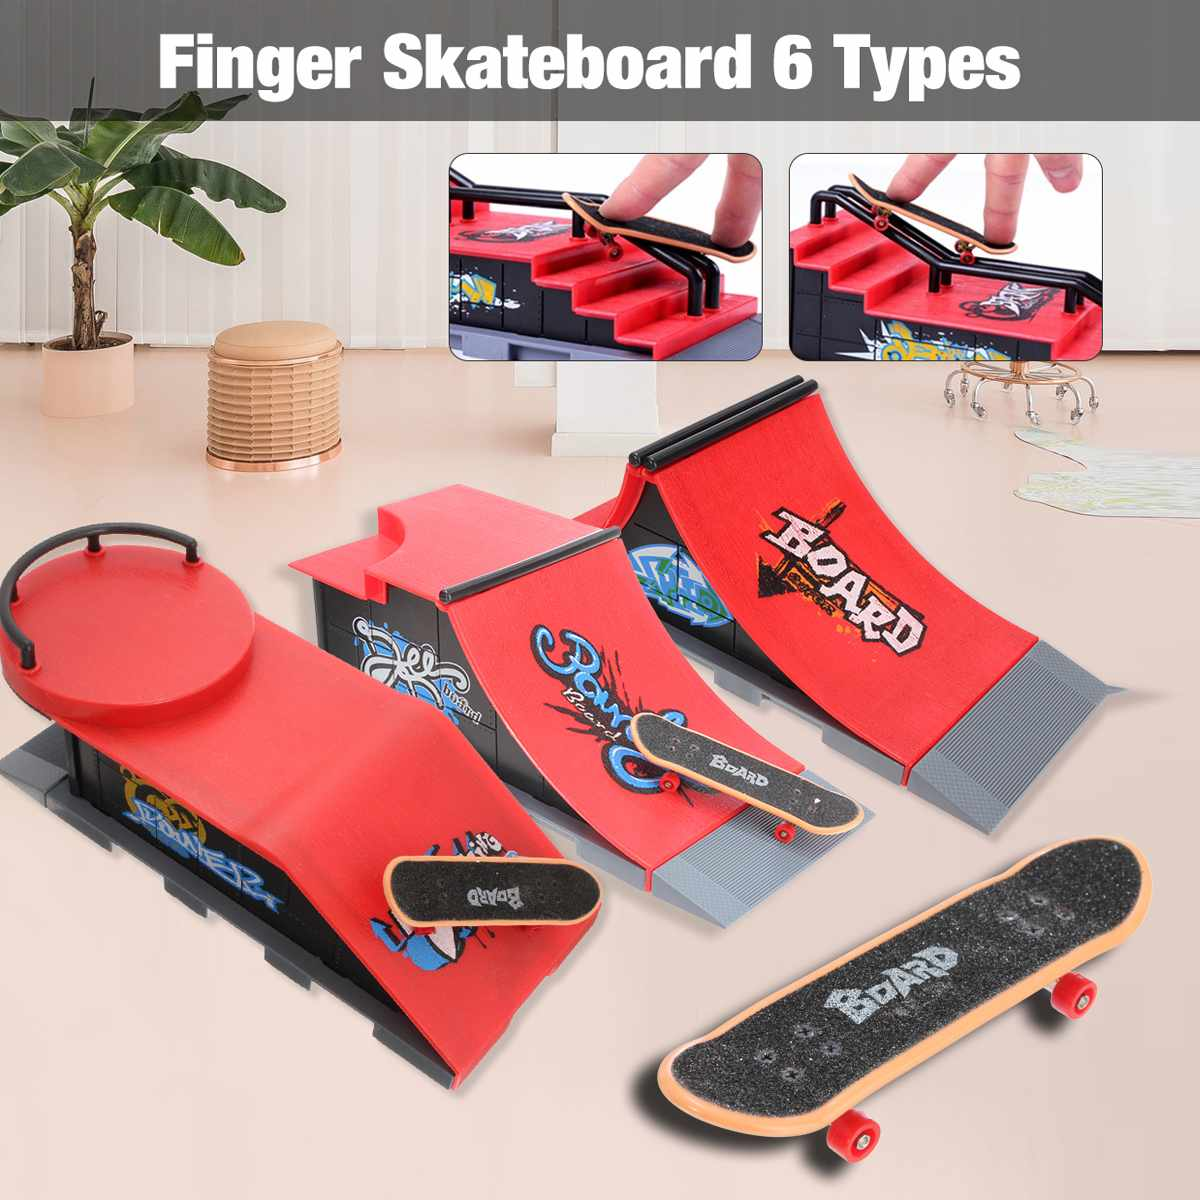 Skate Park Ramp Parts For Tech Deck Fingerboard Finger Board Mini Skate Board Ultimate Parks 6 Types Optional